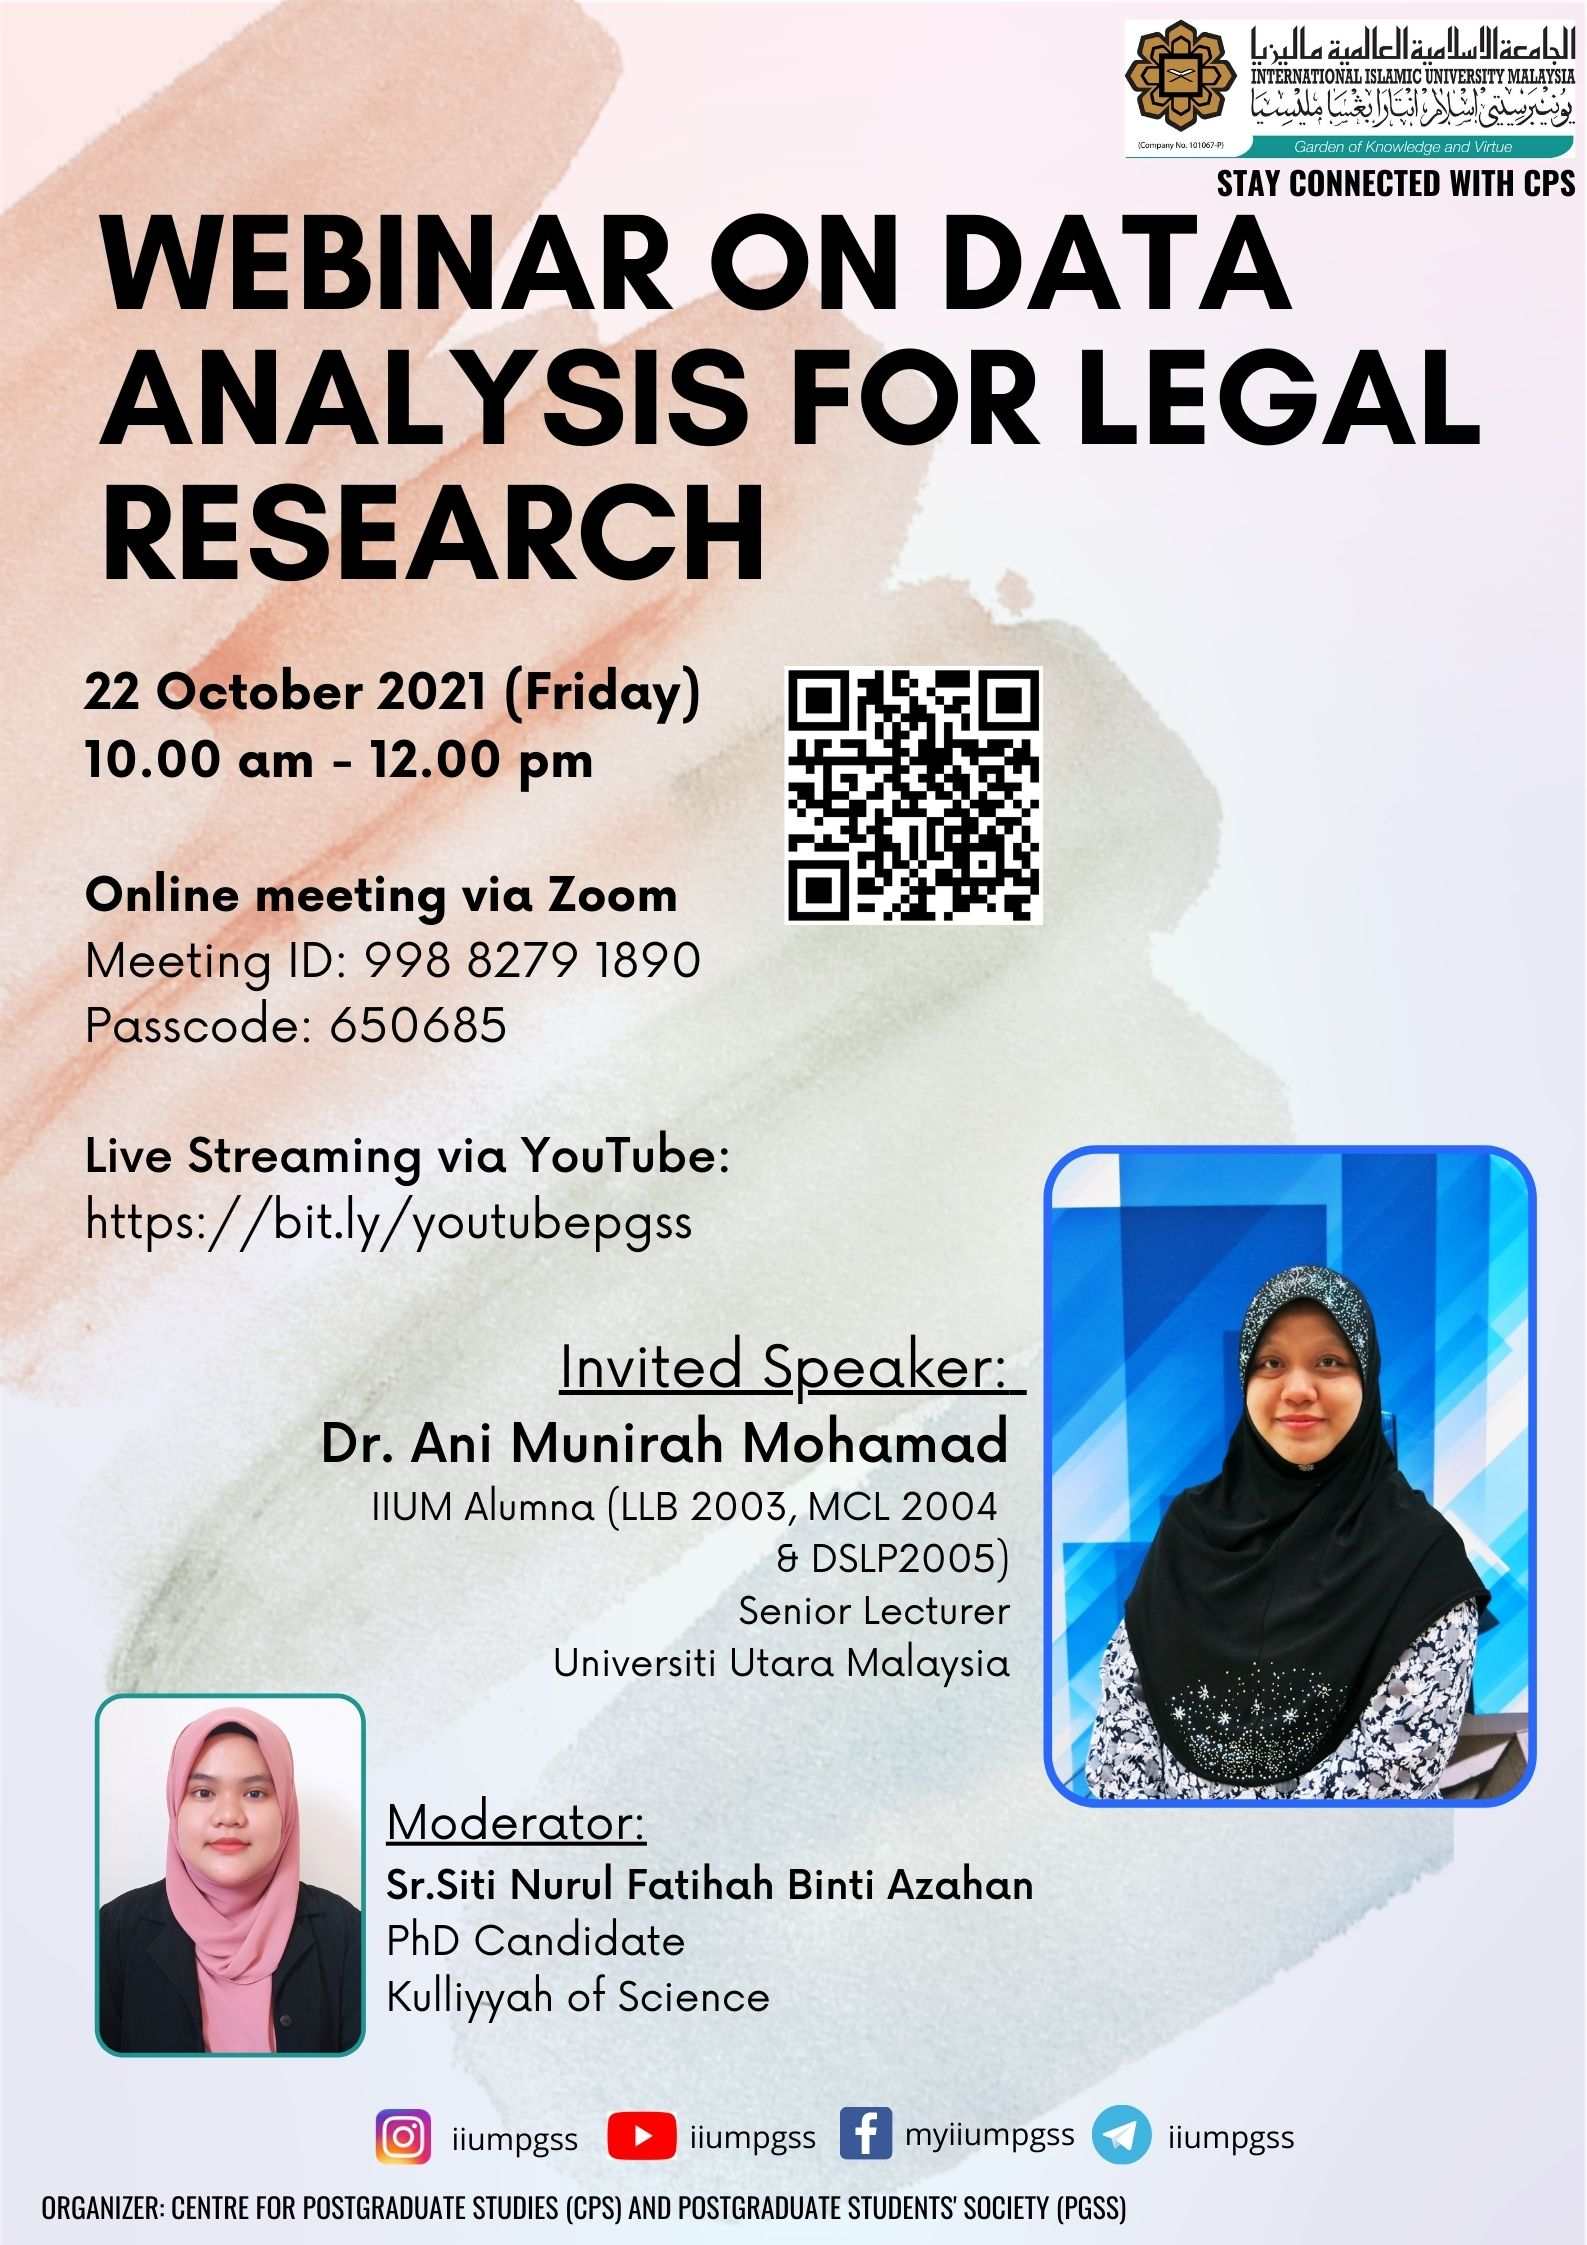 INVITATION TO ATTEND WEBINAR ON DATA  ANALYSIS FOR LEGAL RESEARCH